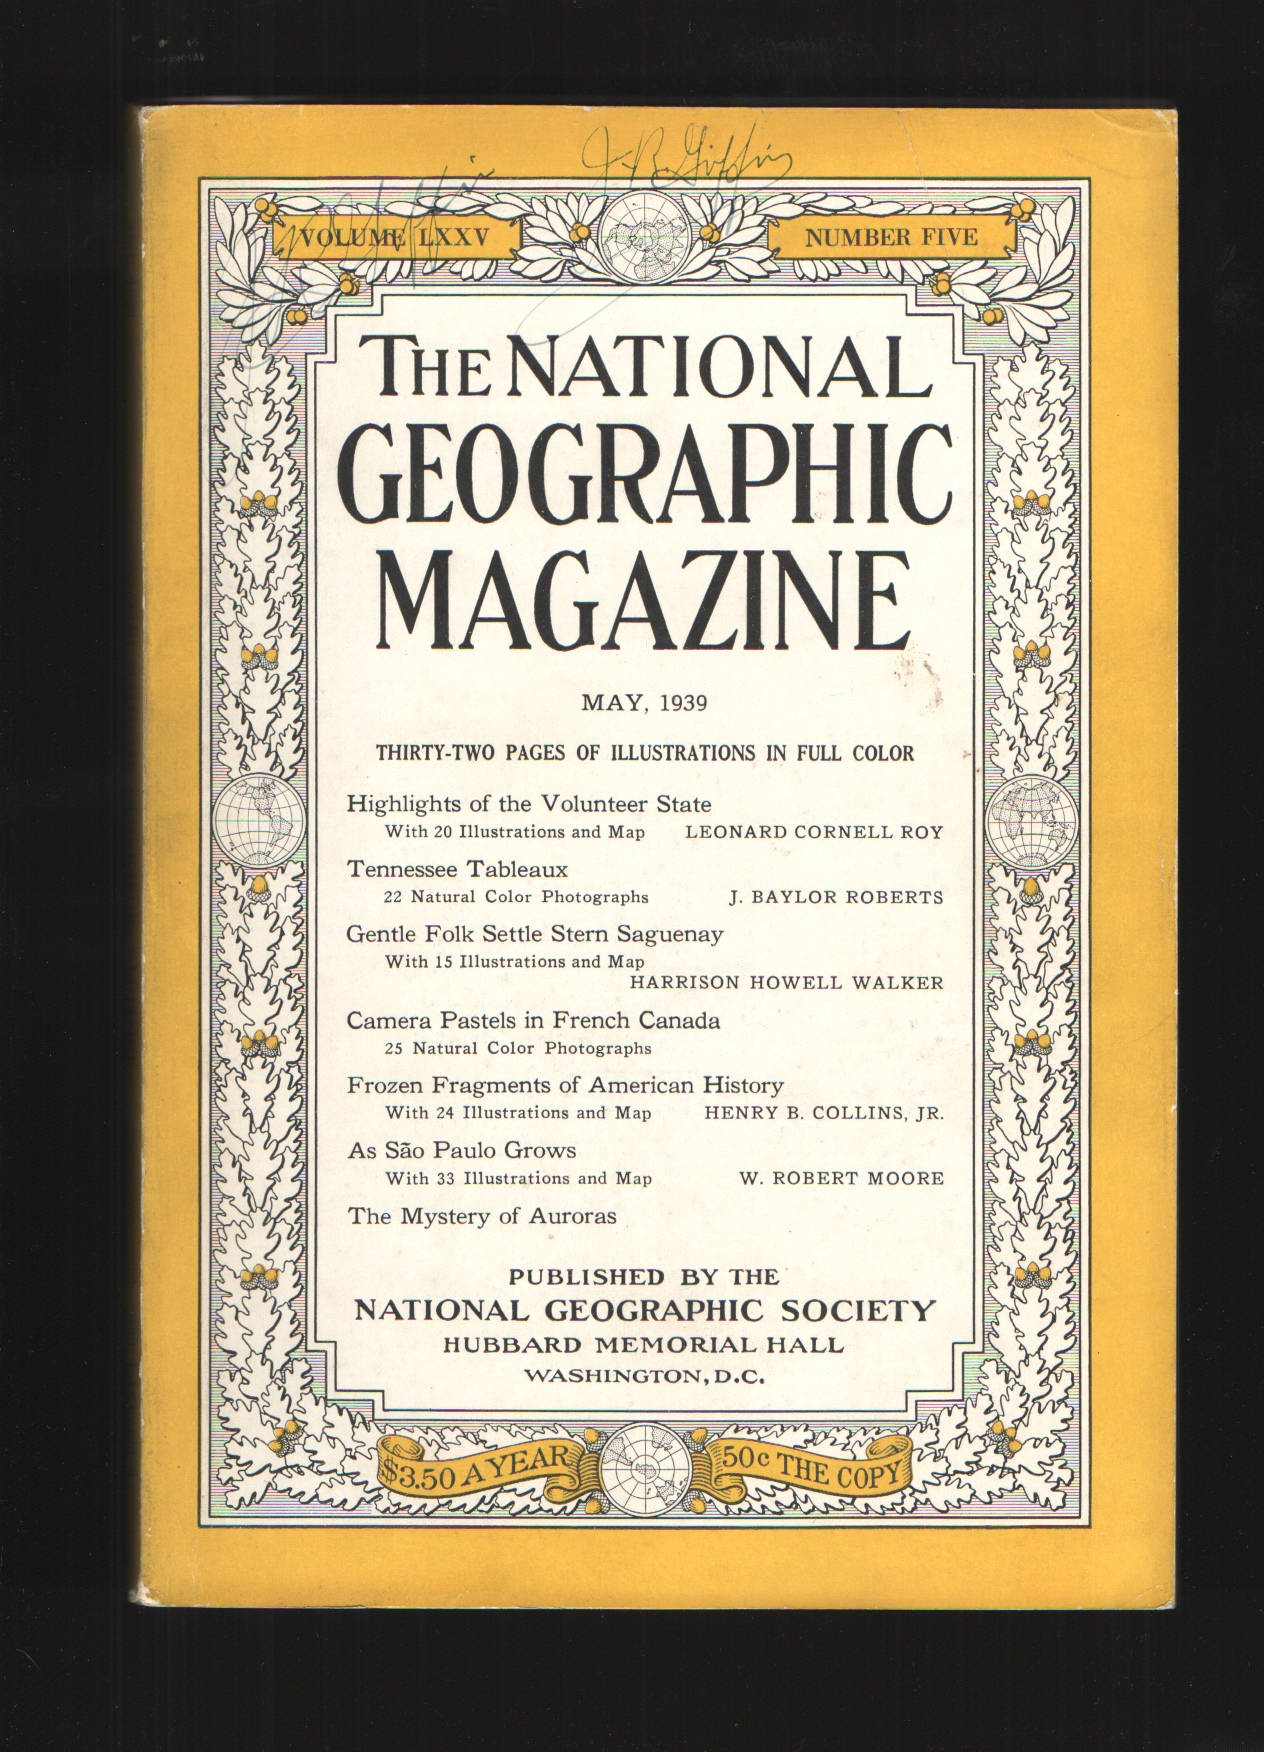 Image for THE NATIONAL GEOGRAPHIC MAGAZINE - MAY, 1939 - VOL. LXXV - NO. 5